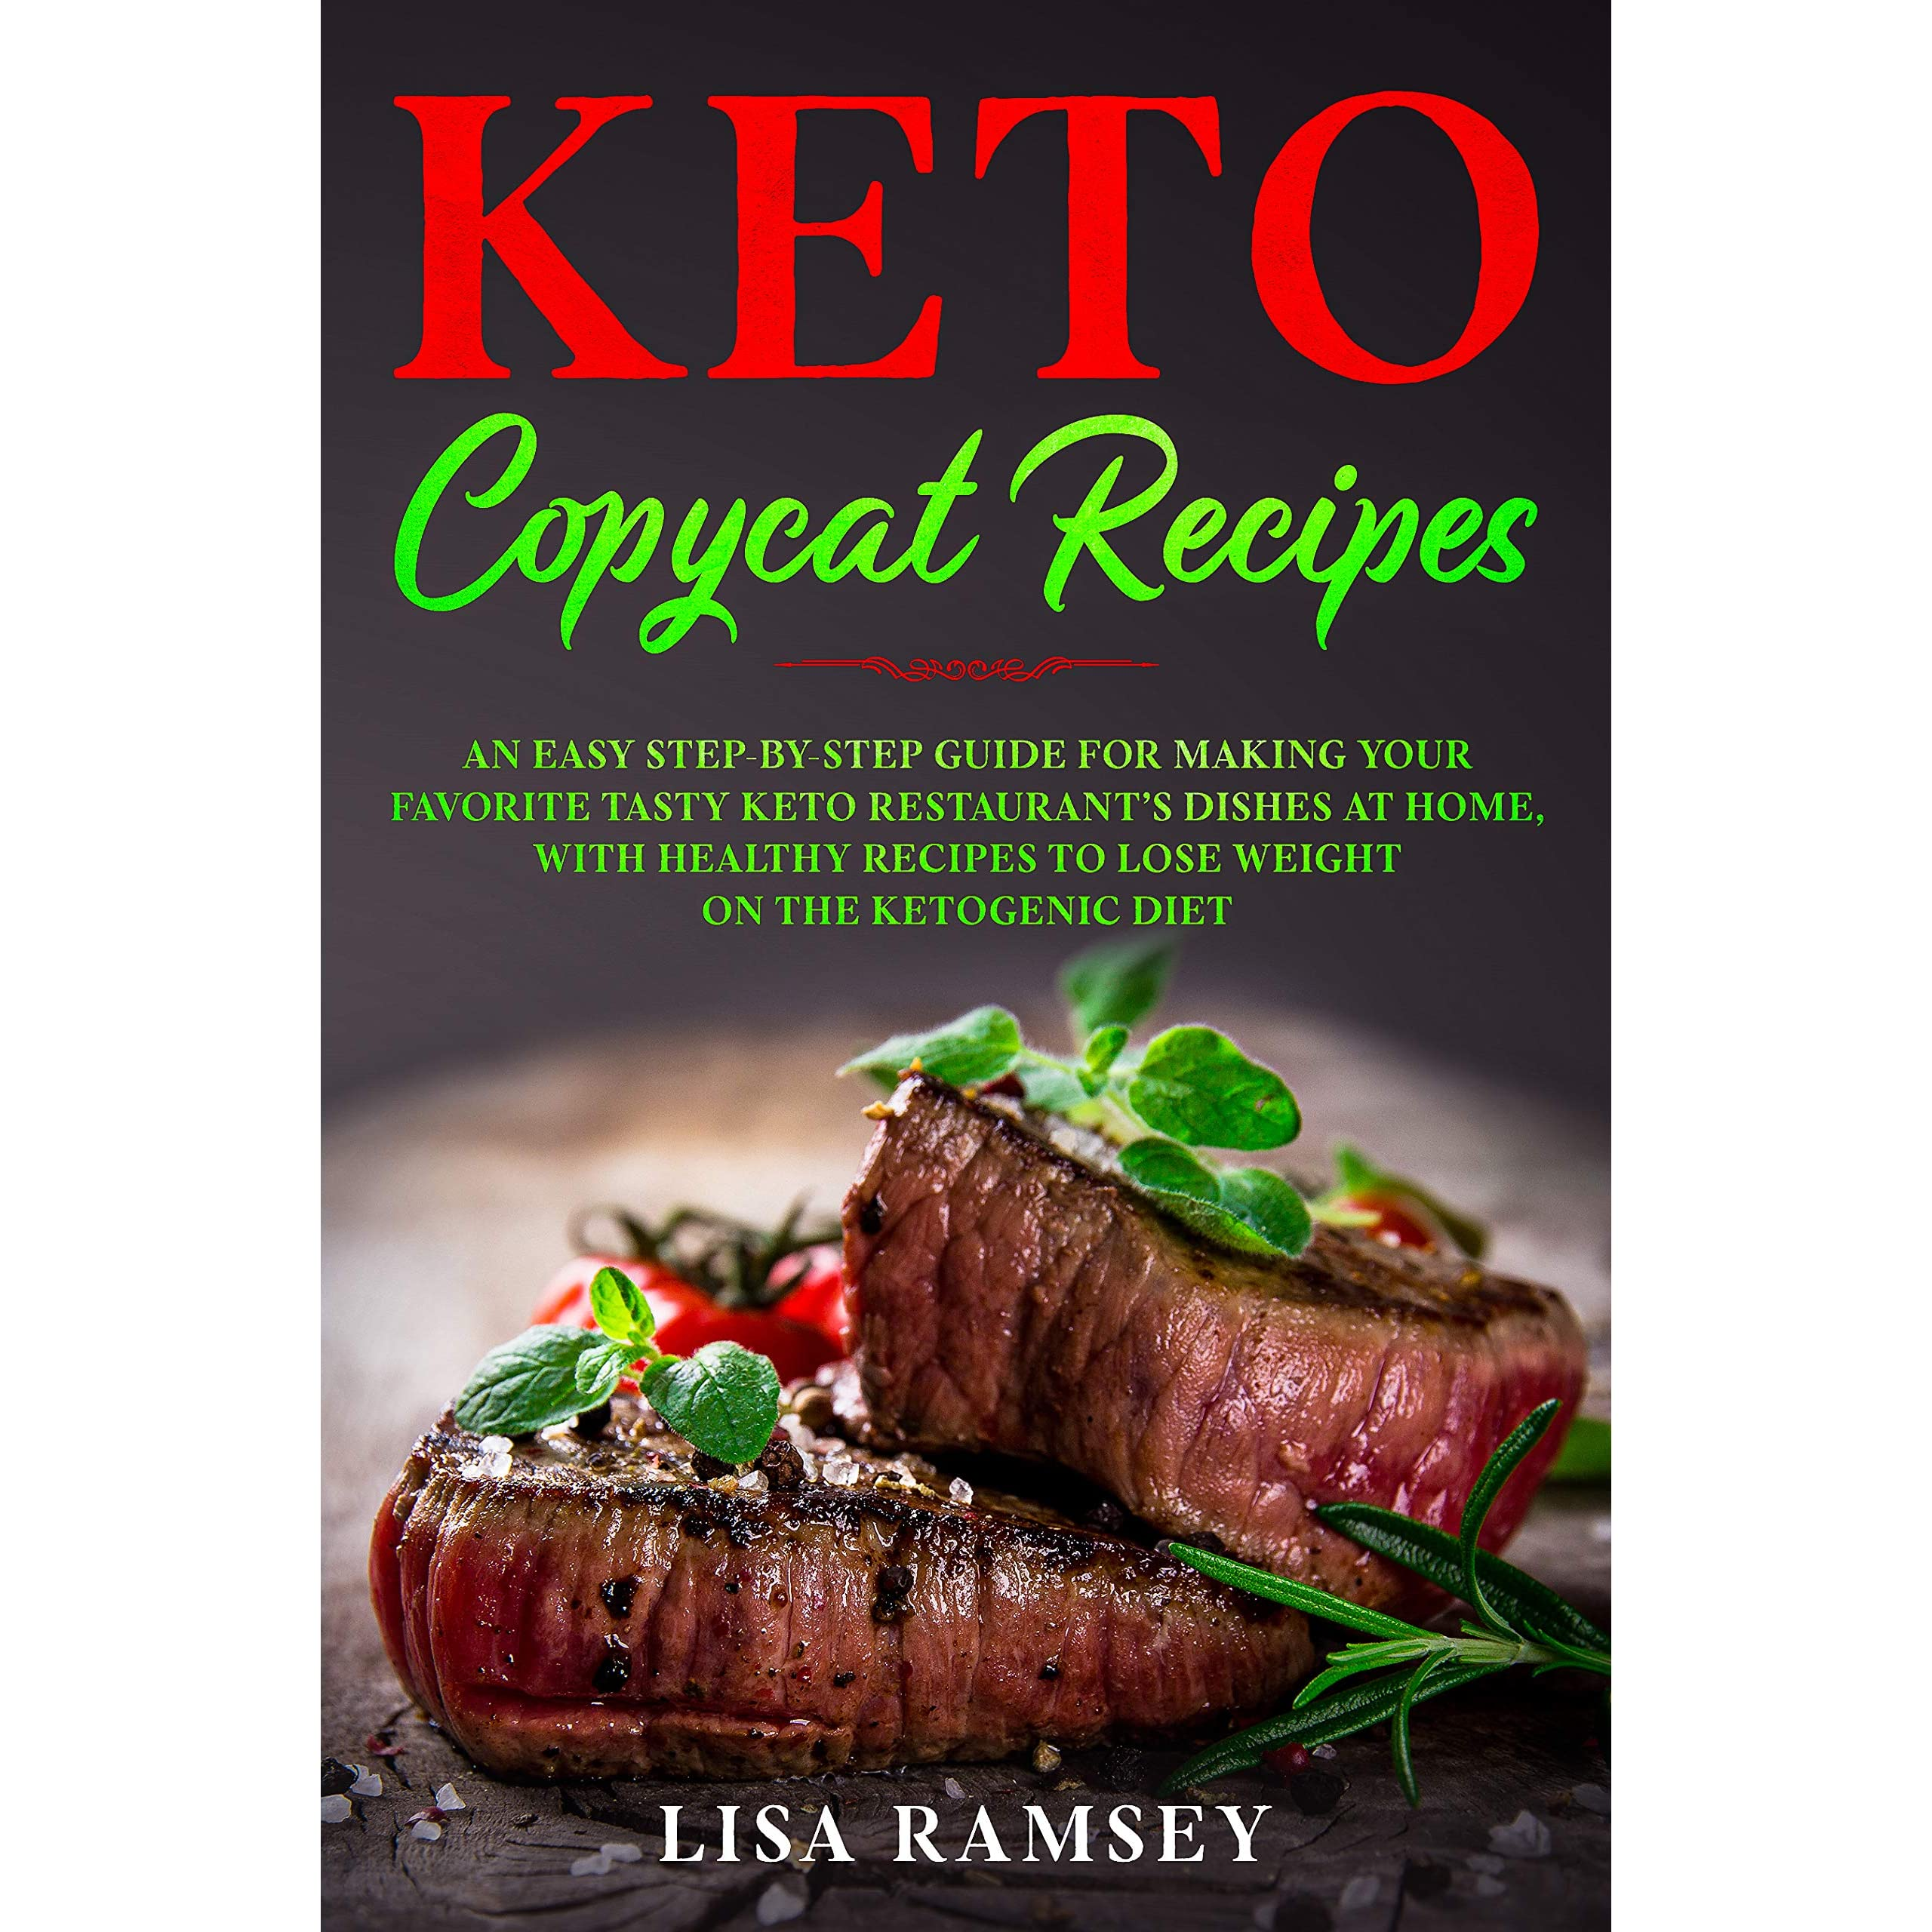 Keto Copycat Recipes An Easy Step By Step Guide For Making Your Favorite Tasty Keto Restaurant S Dishes At Home With Healthy Recipes To Lose Weight On The Ketogenic Diet By Lisa Ramsey